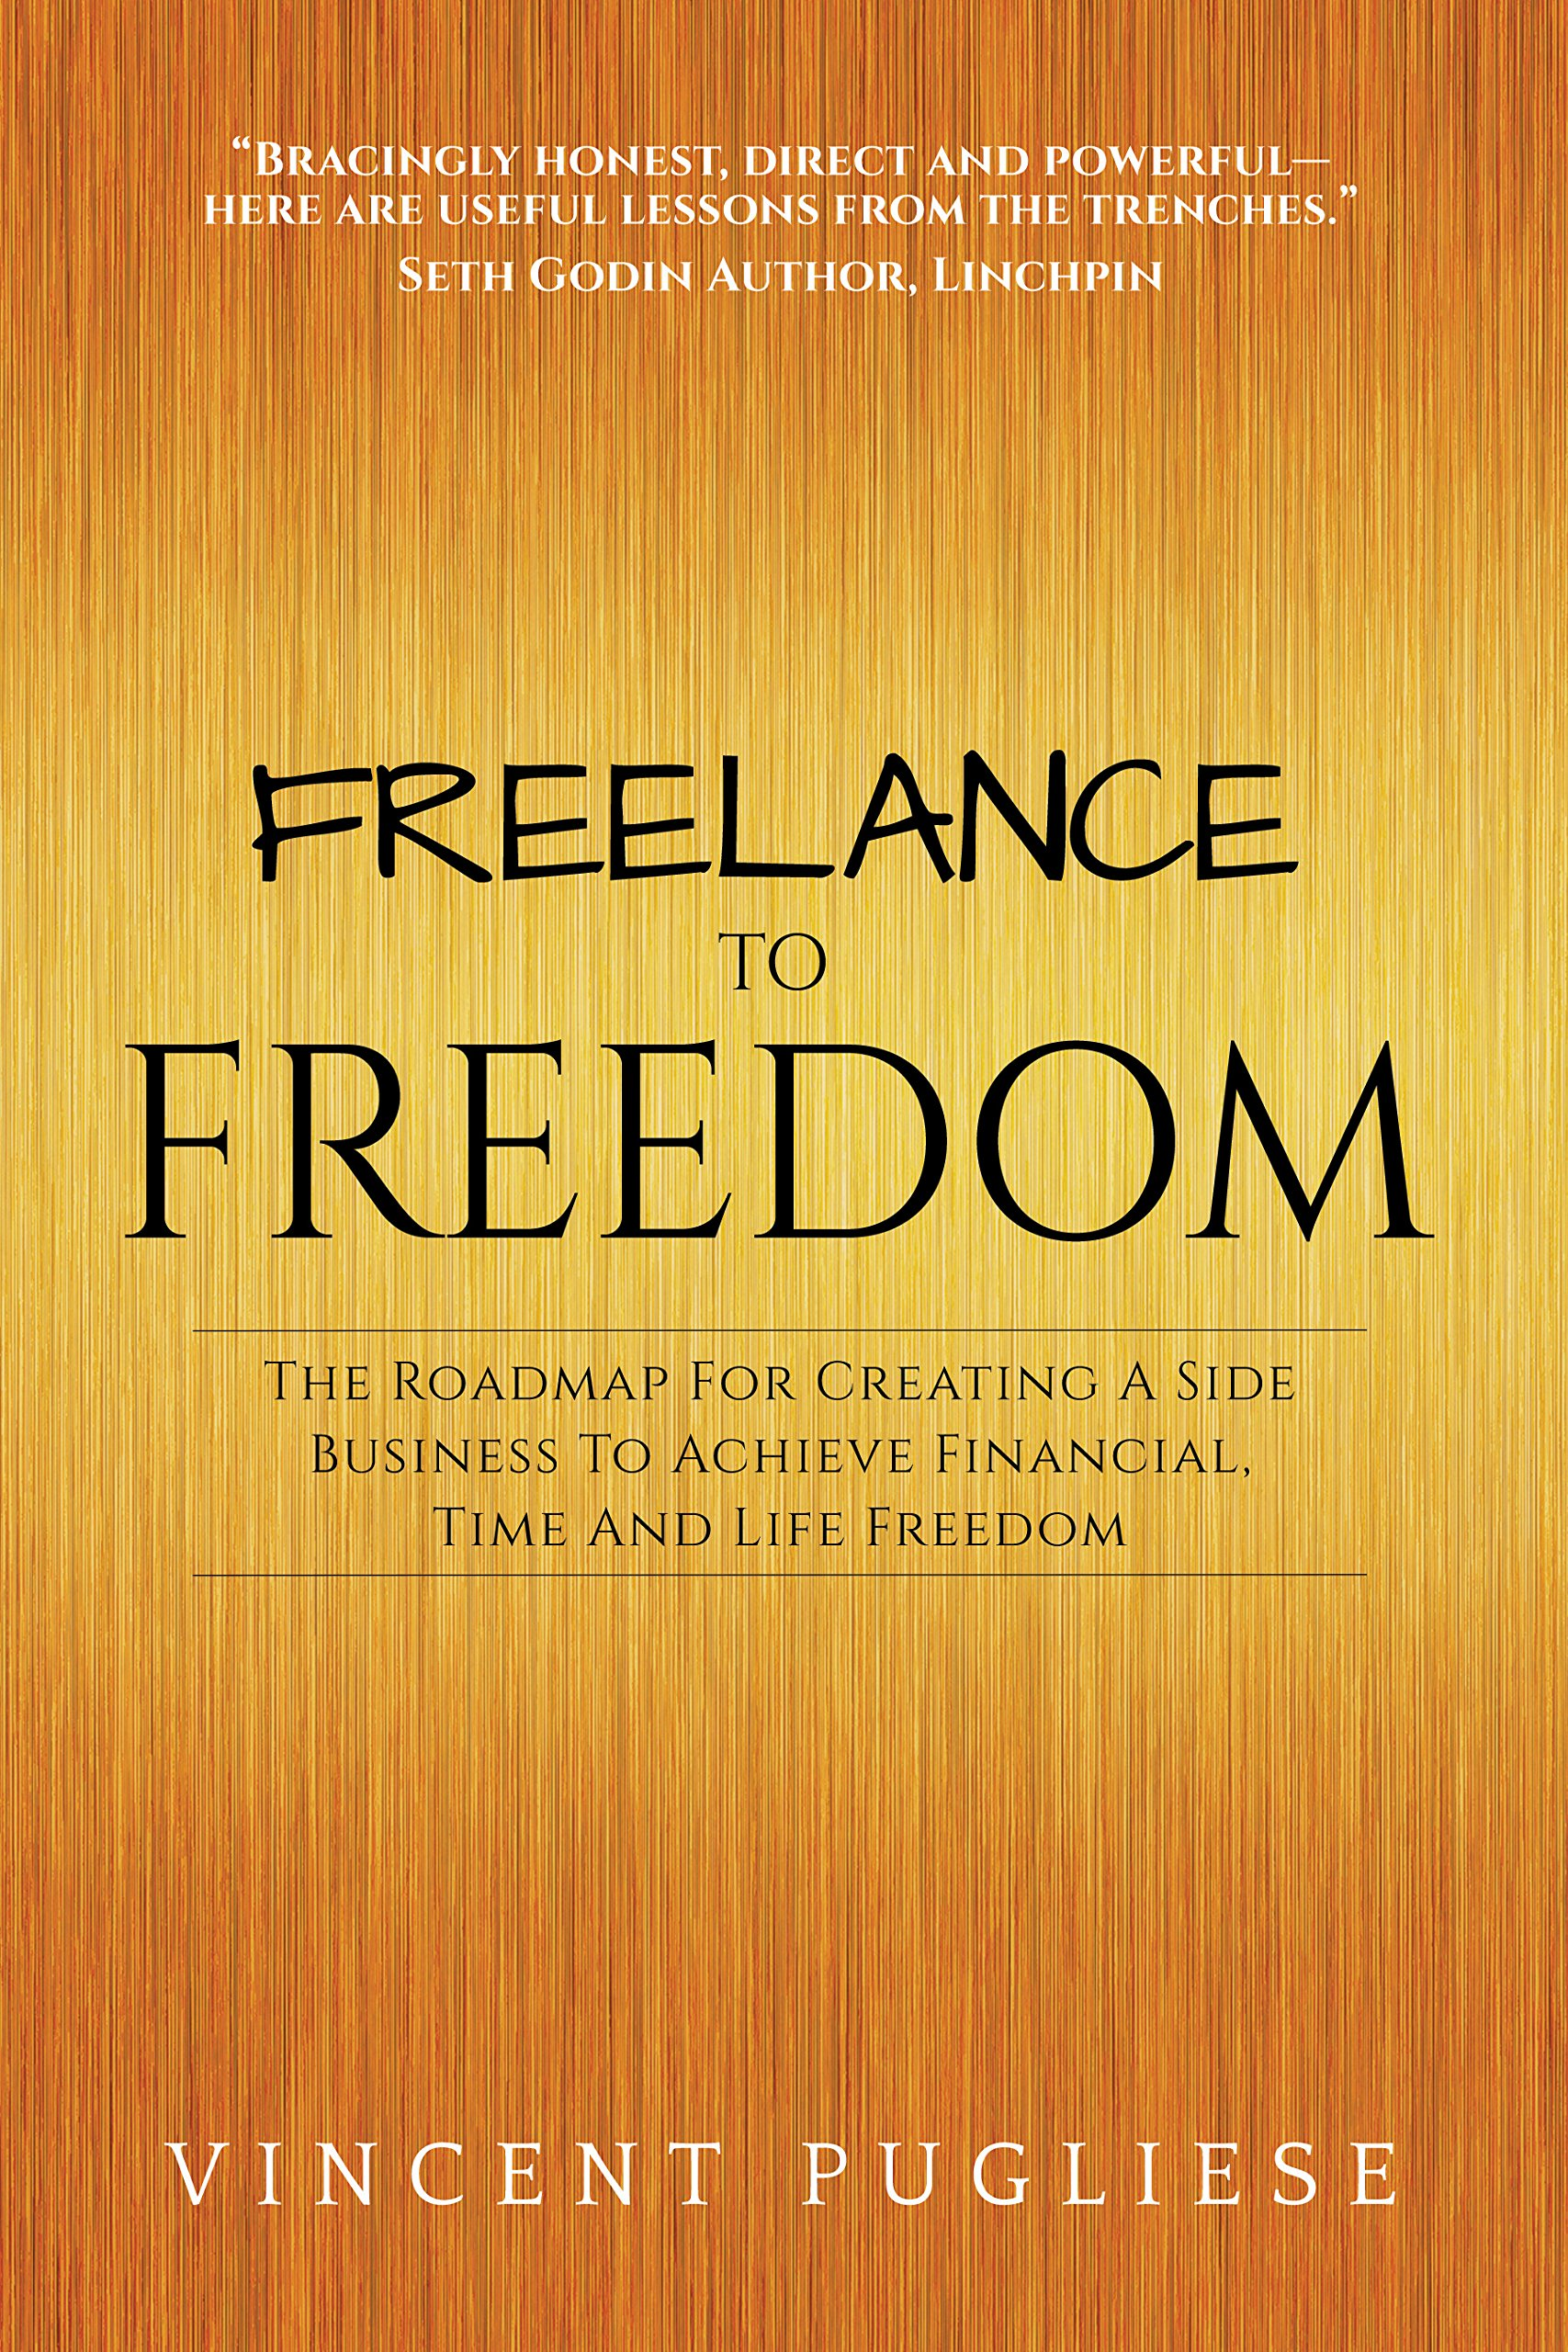 Freelance to Freedom: The Roadmap for Creating a Side Business to Achieve  Financial, Time and Life Freedom: Vincent Pugliese: 9781683504566:  Amazon.com: ...